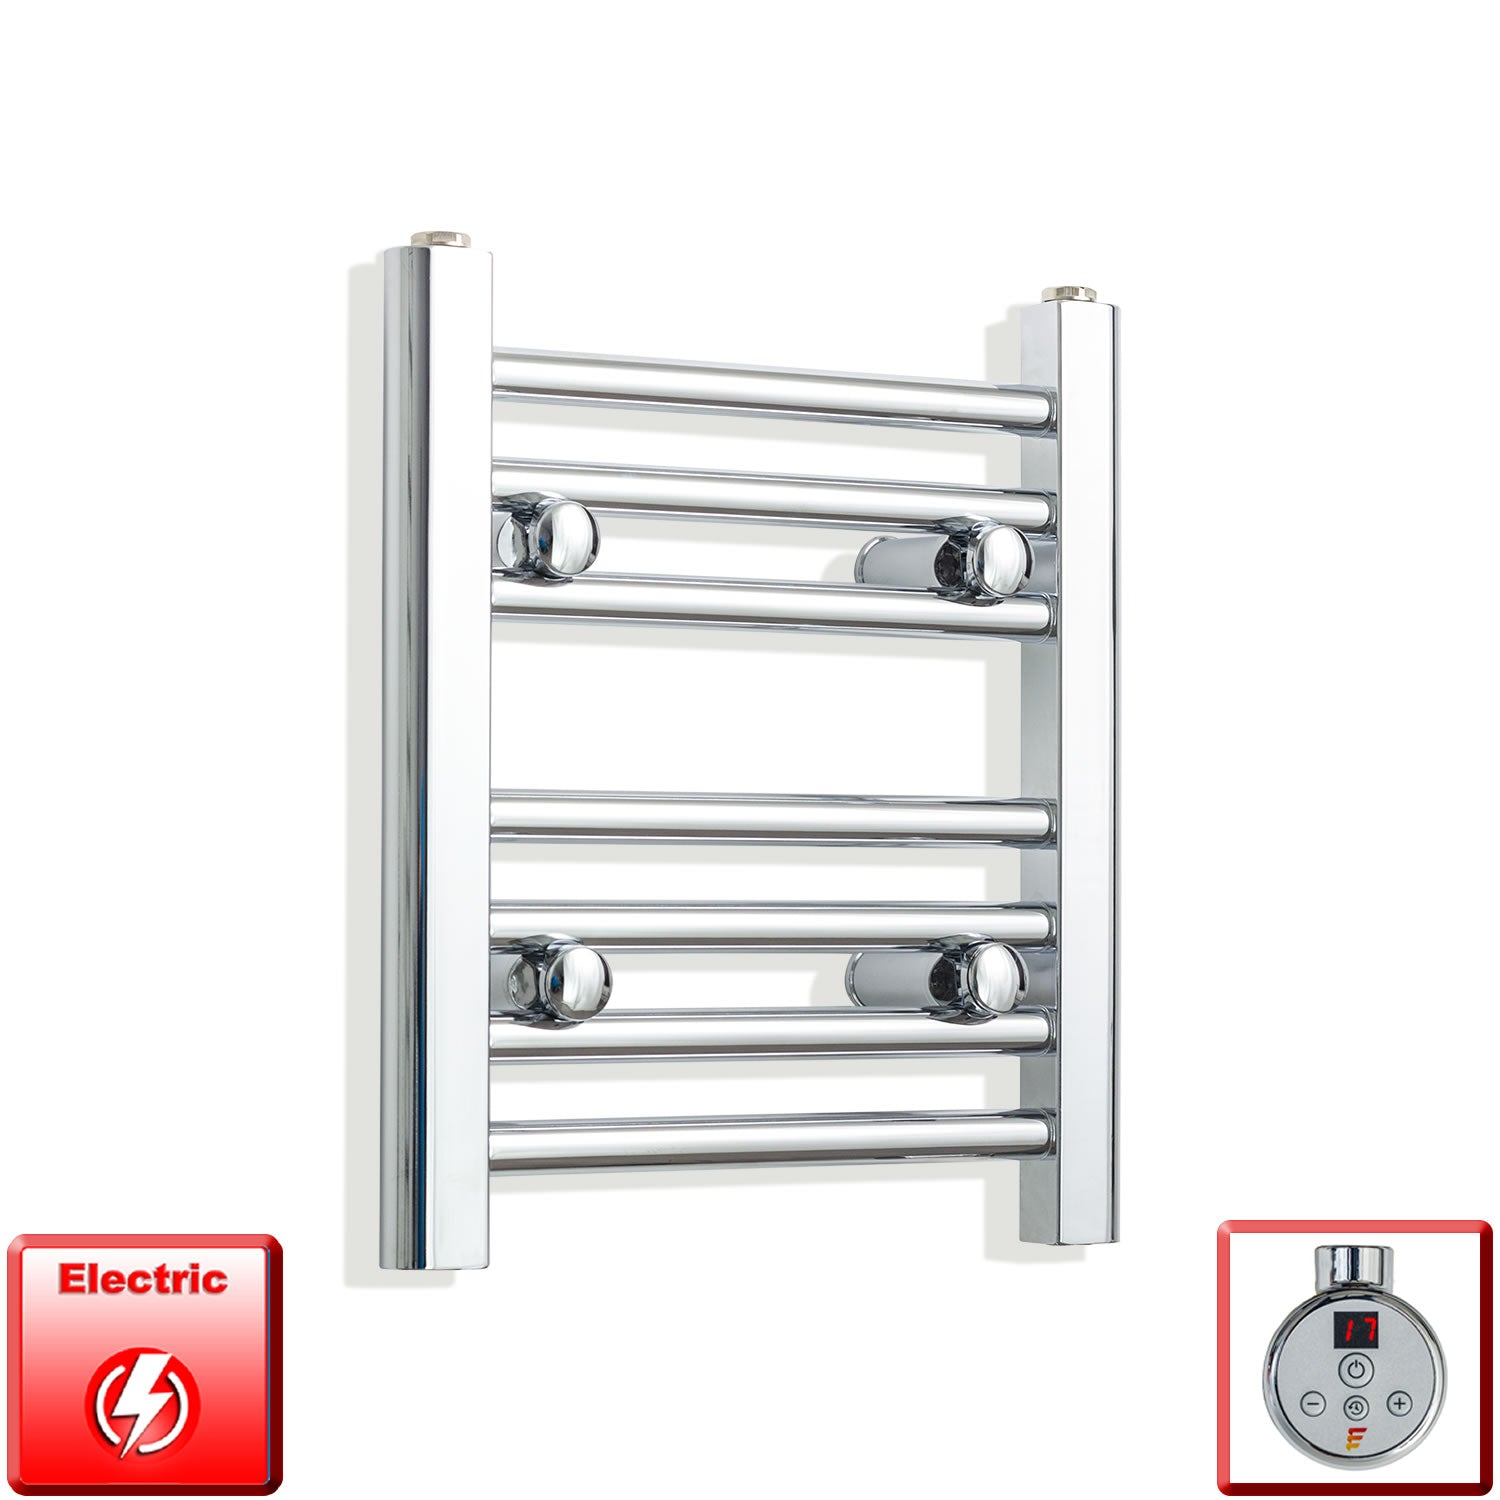 350mm Wide 400mm High Pre-Filled Chrome Electric Towel Rail Radiator With Thermostatic DIGI Element